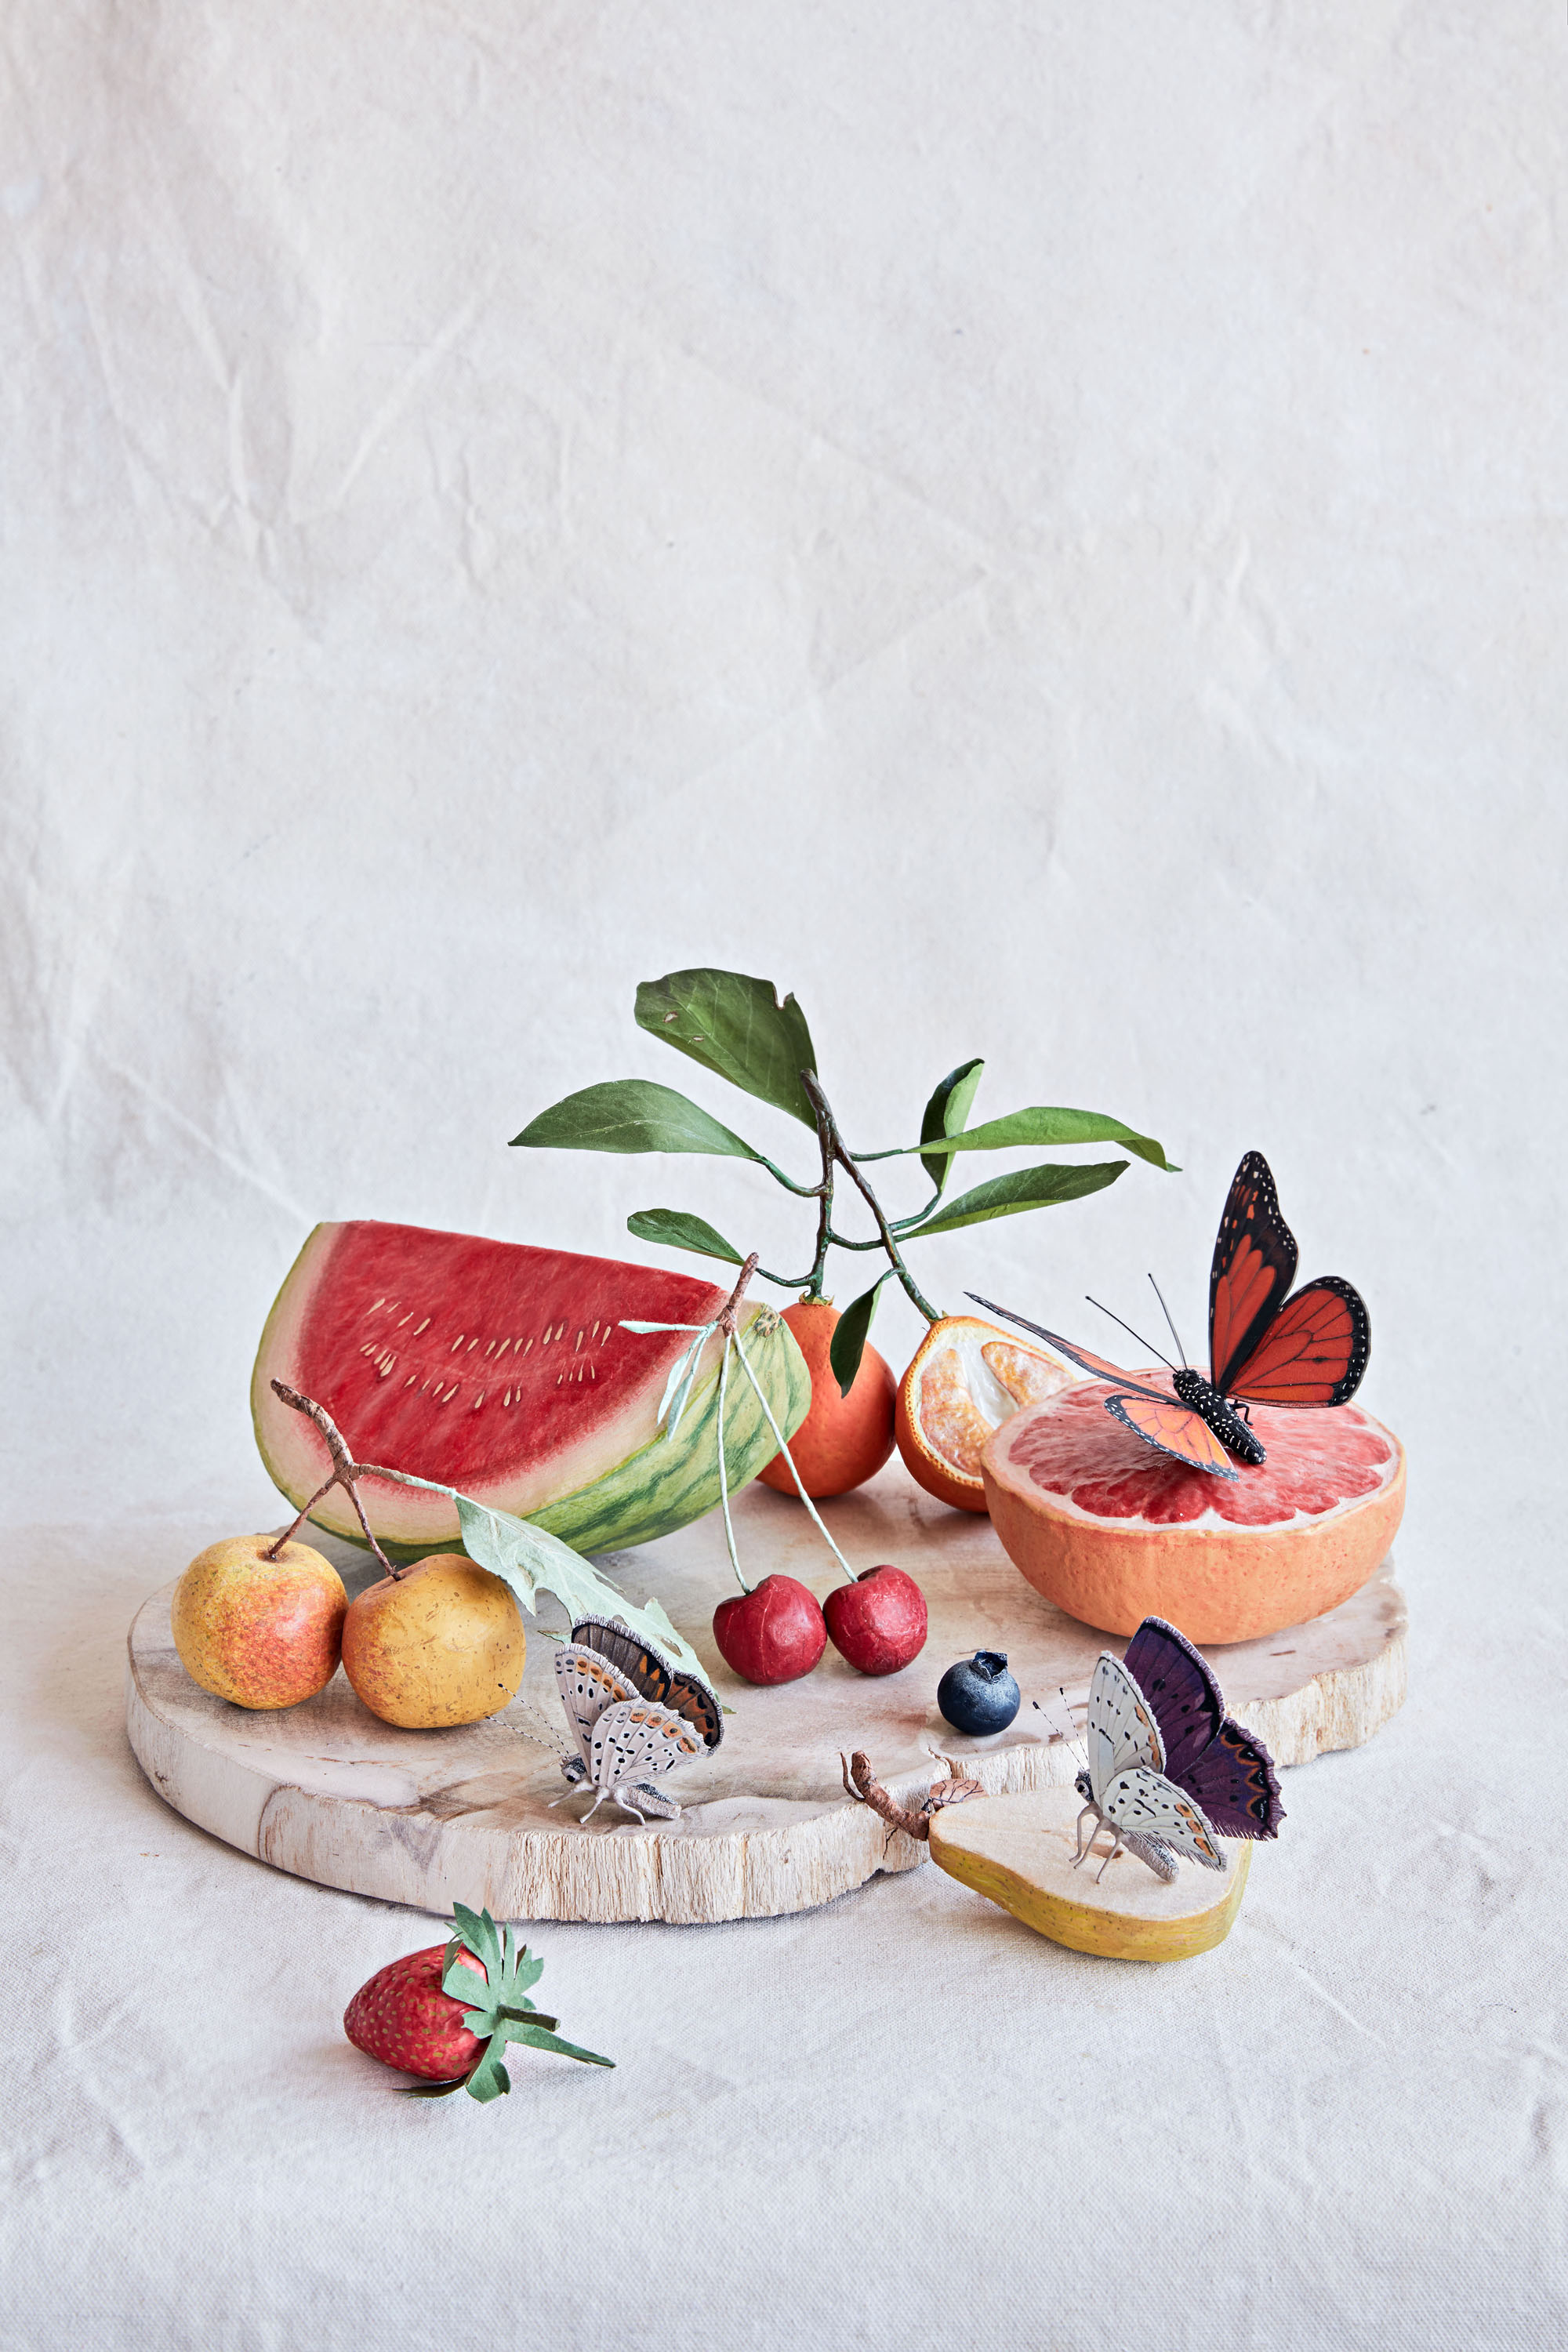 Ann Wood's Paper Flowers, Fruit, and Insects Are a Sight to Behold